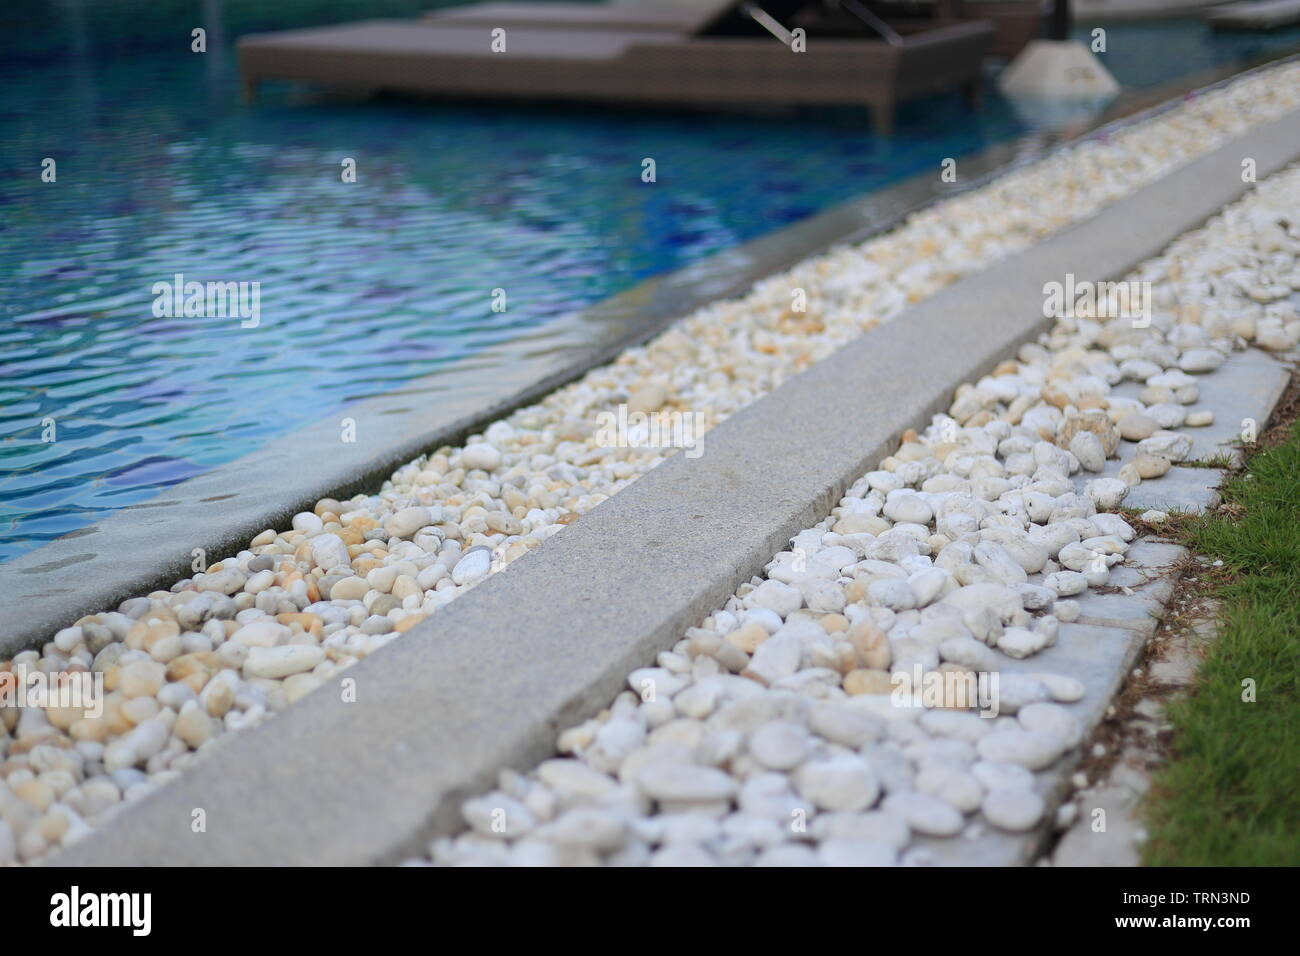 swimming pool drainage system grating covered with round white river stone pebble. swimming pool architectural detail design. White pebble contrasting - Stock Image